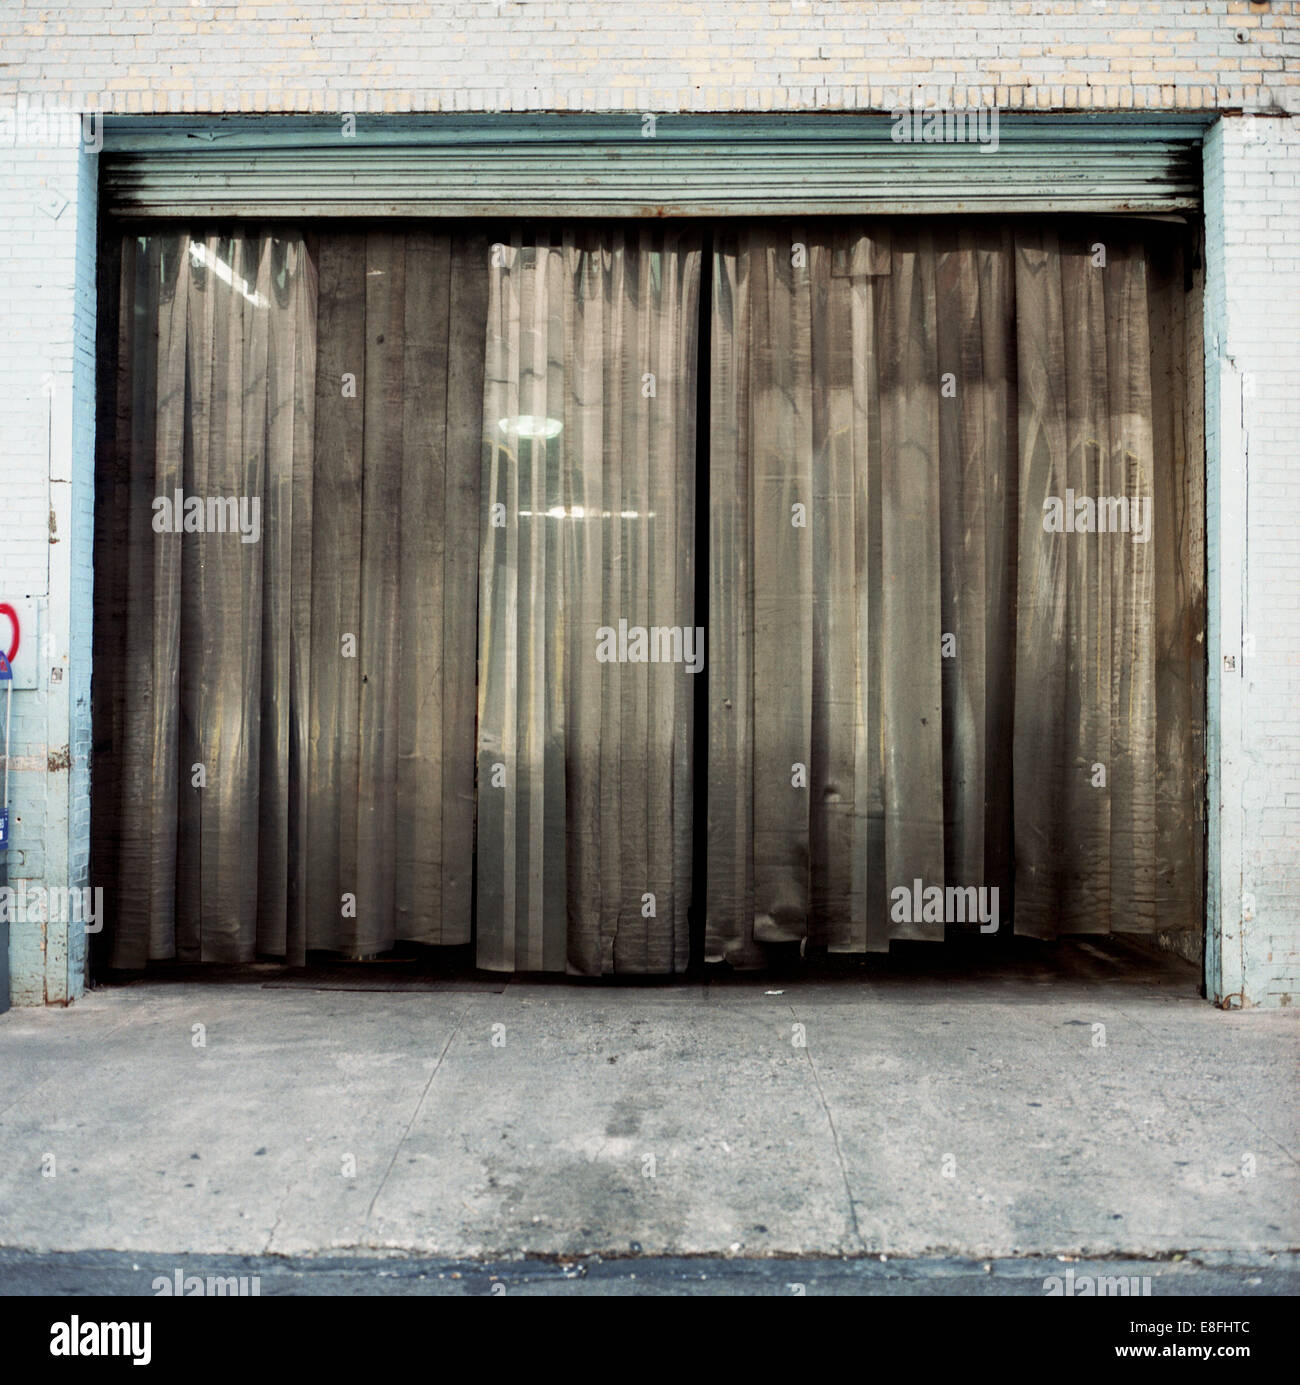 USA, New York State, New York City, Curtain in garage door Stock Photo